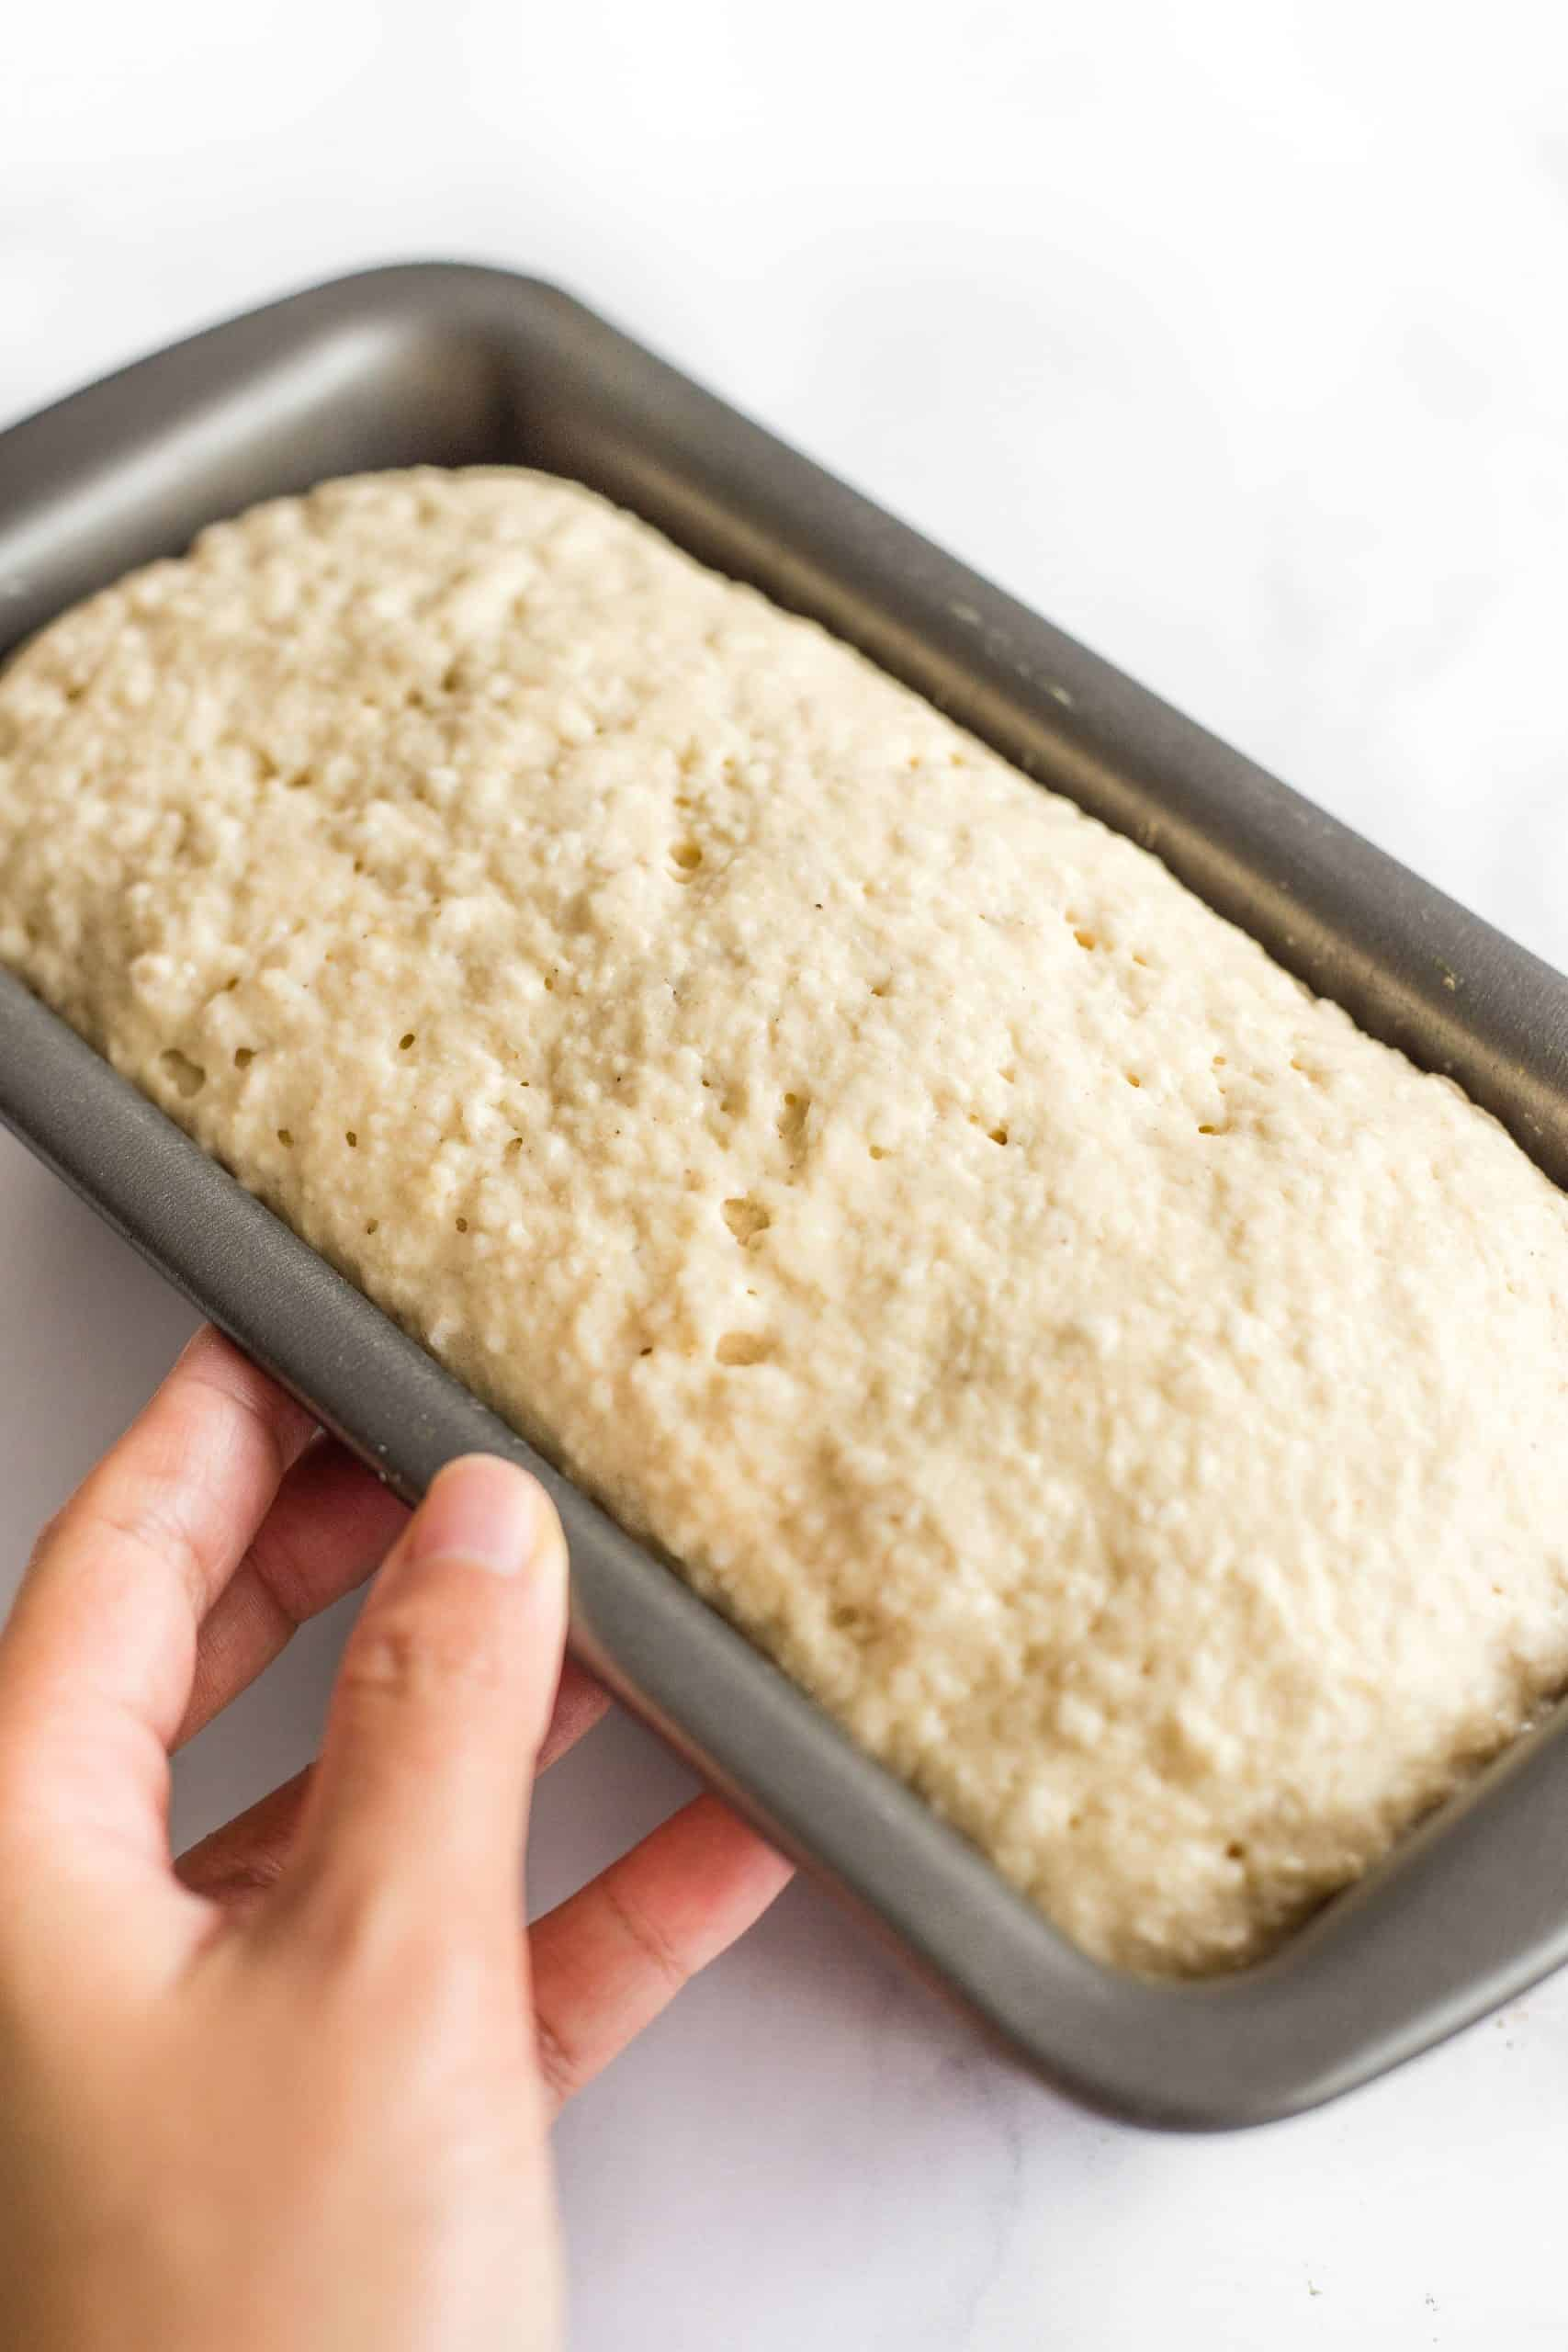 Hand holding a loaf pan with risen bread dough inside.